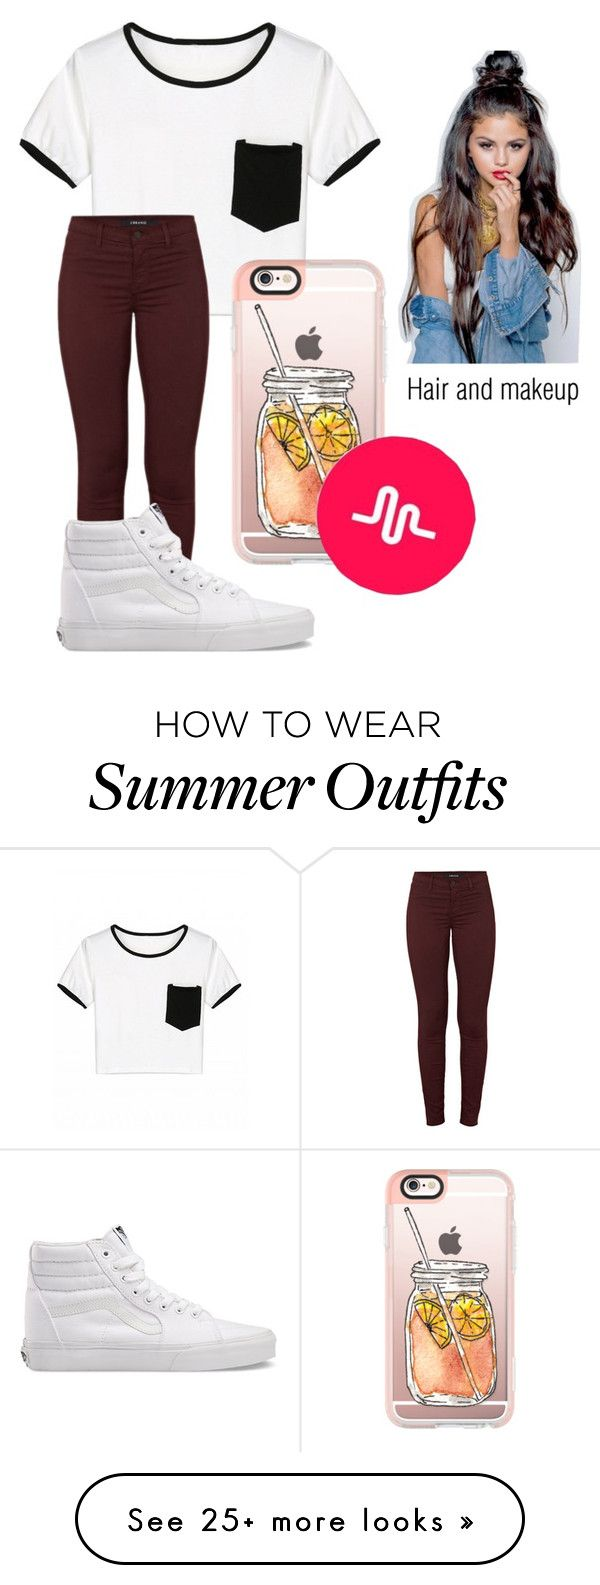 Vidcon outfit